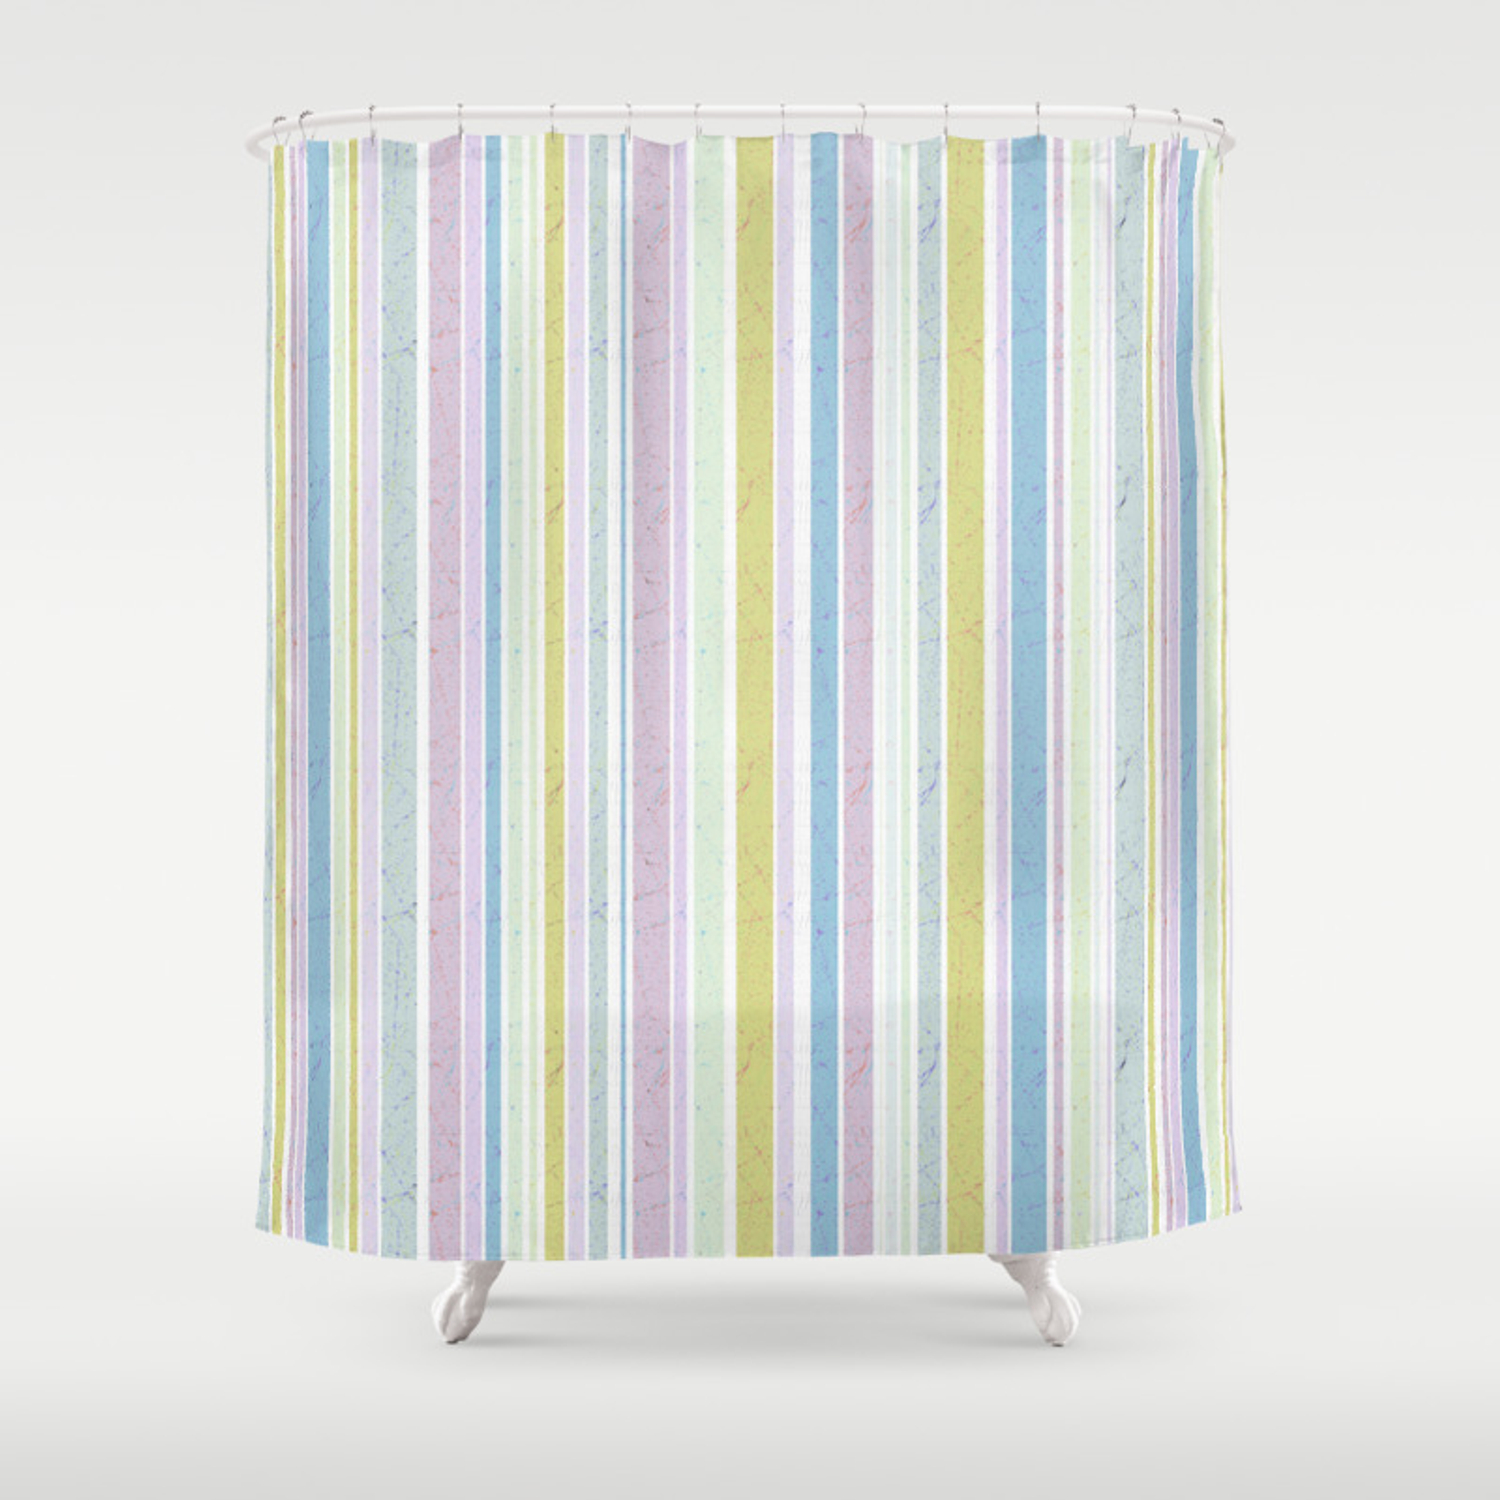 Multicoloured Striped Pattern In Pastel Shades Shower Curtain